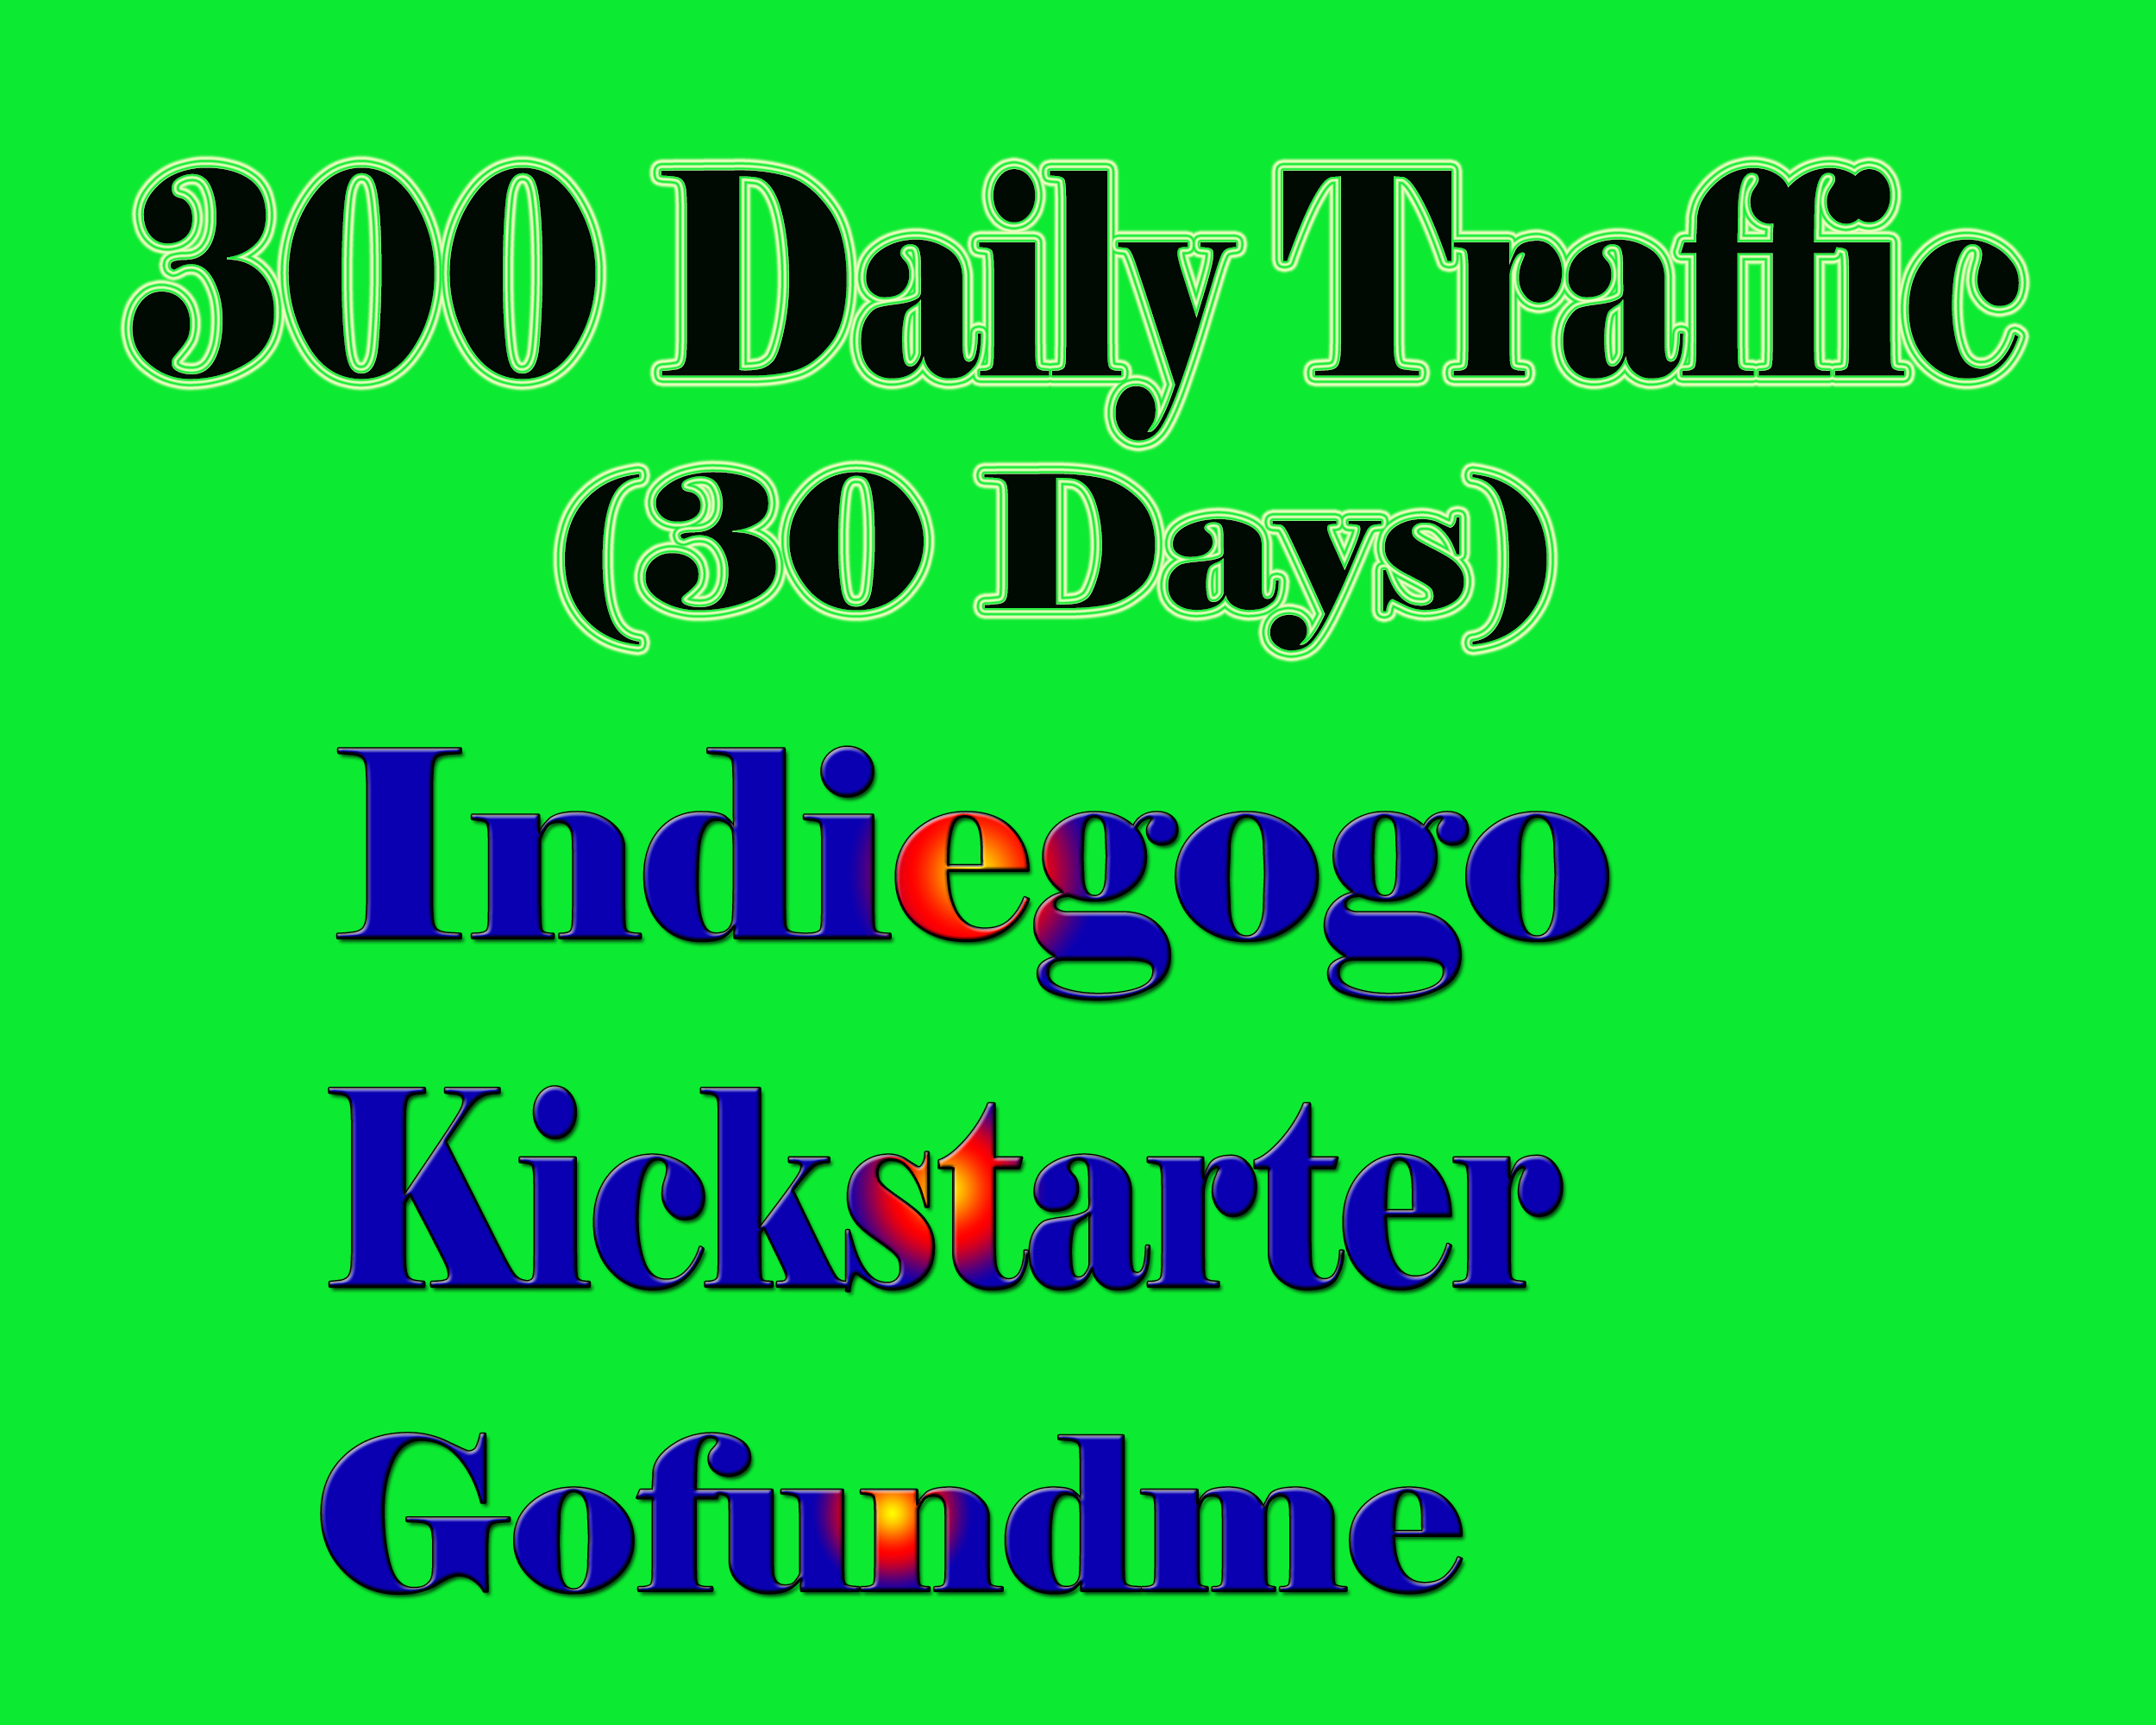 Promote your Indiegogo,  Kickstarter or GoFundMe crowdfunding campaign